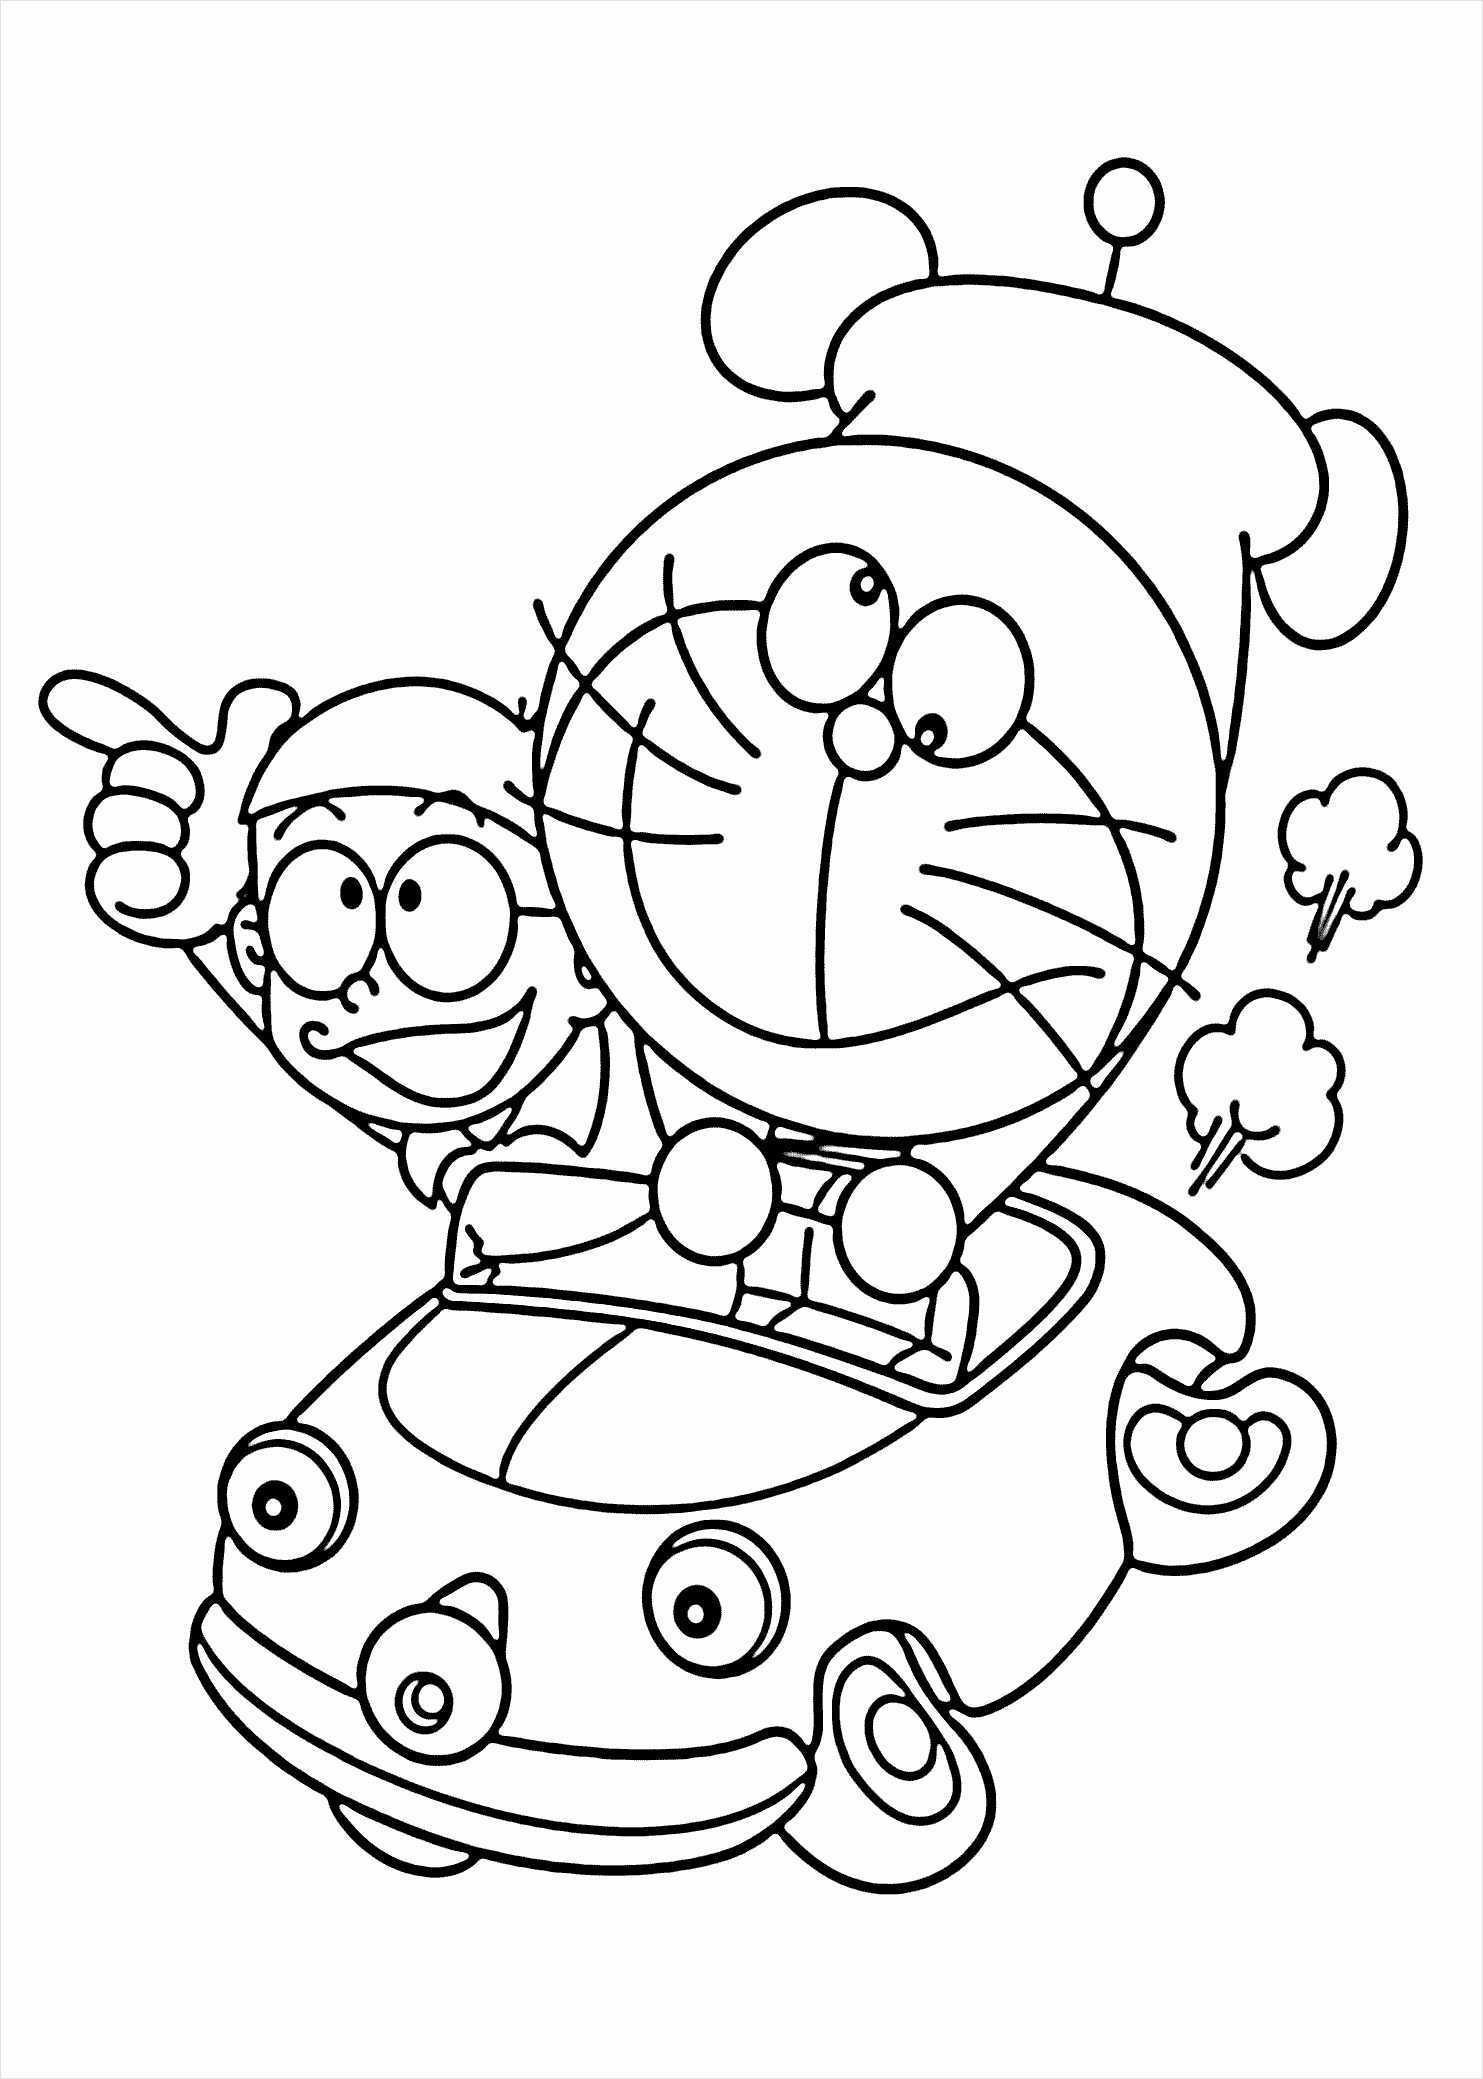 Farm Sketch Easy Lovely Farm Sketch Easy Best Easy Farmer Sketch Coloring Pages Inspirational Animal Coloring Pages Mermaid Coloring Pages